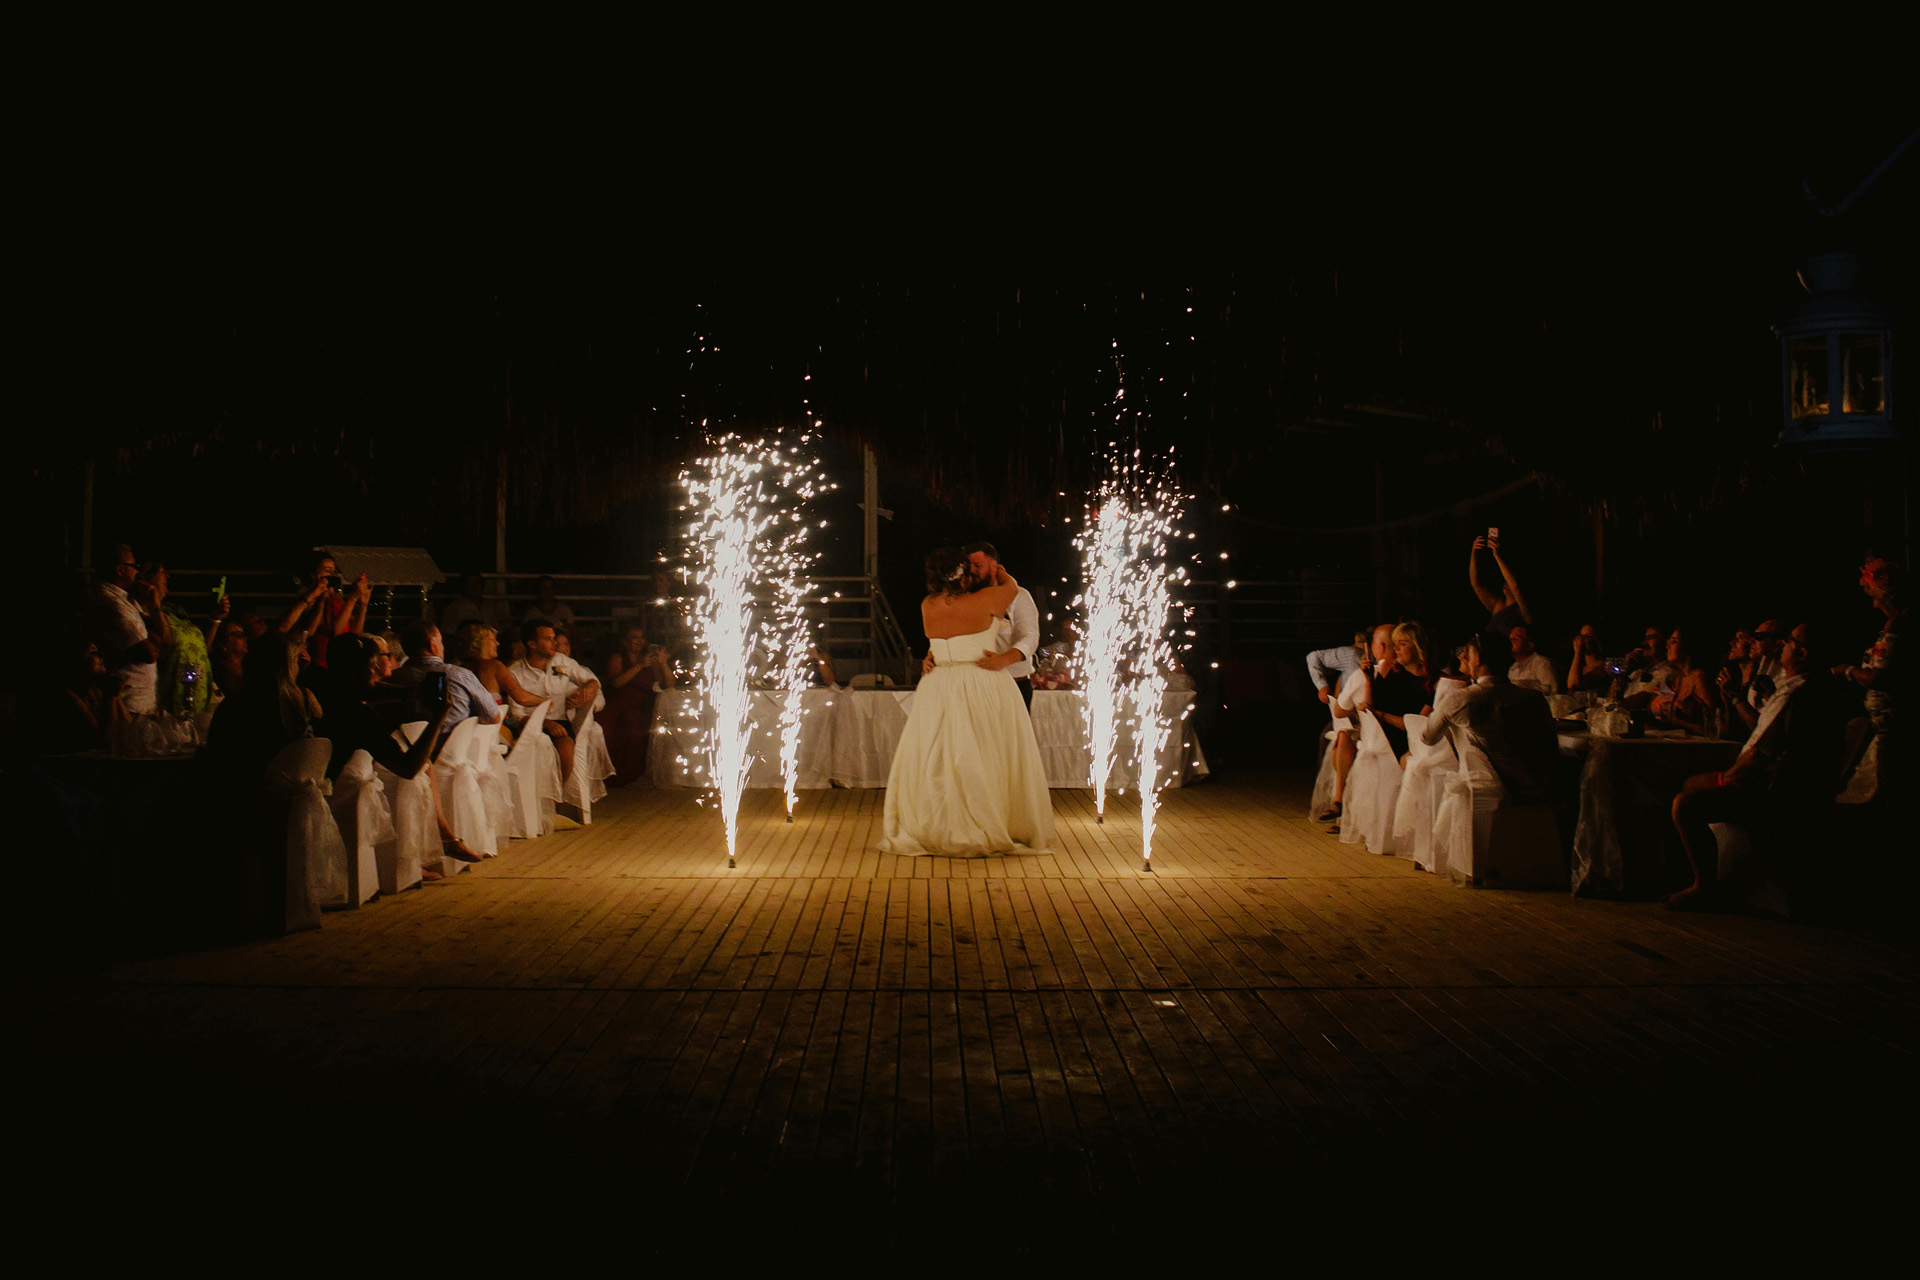 Elopement Photography from Fethiye, Mugla, Turkey | With the lights of sparklers, Lucy and Lewis performed a super romantic dance